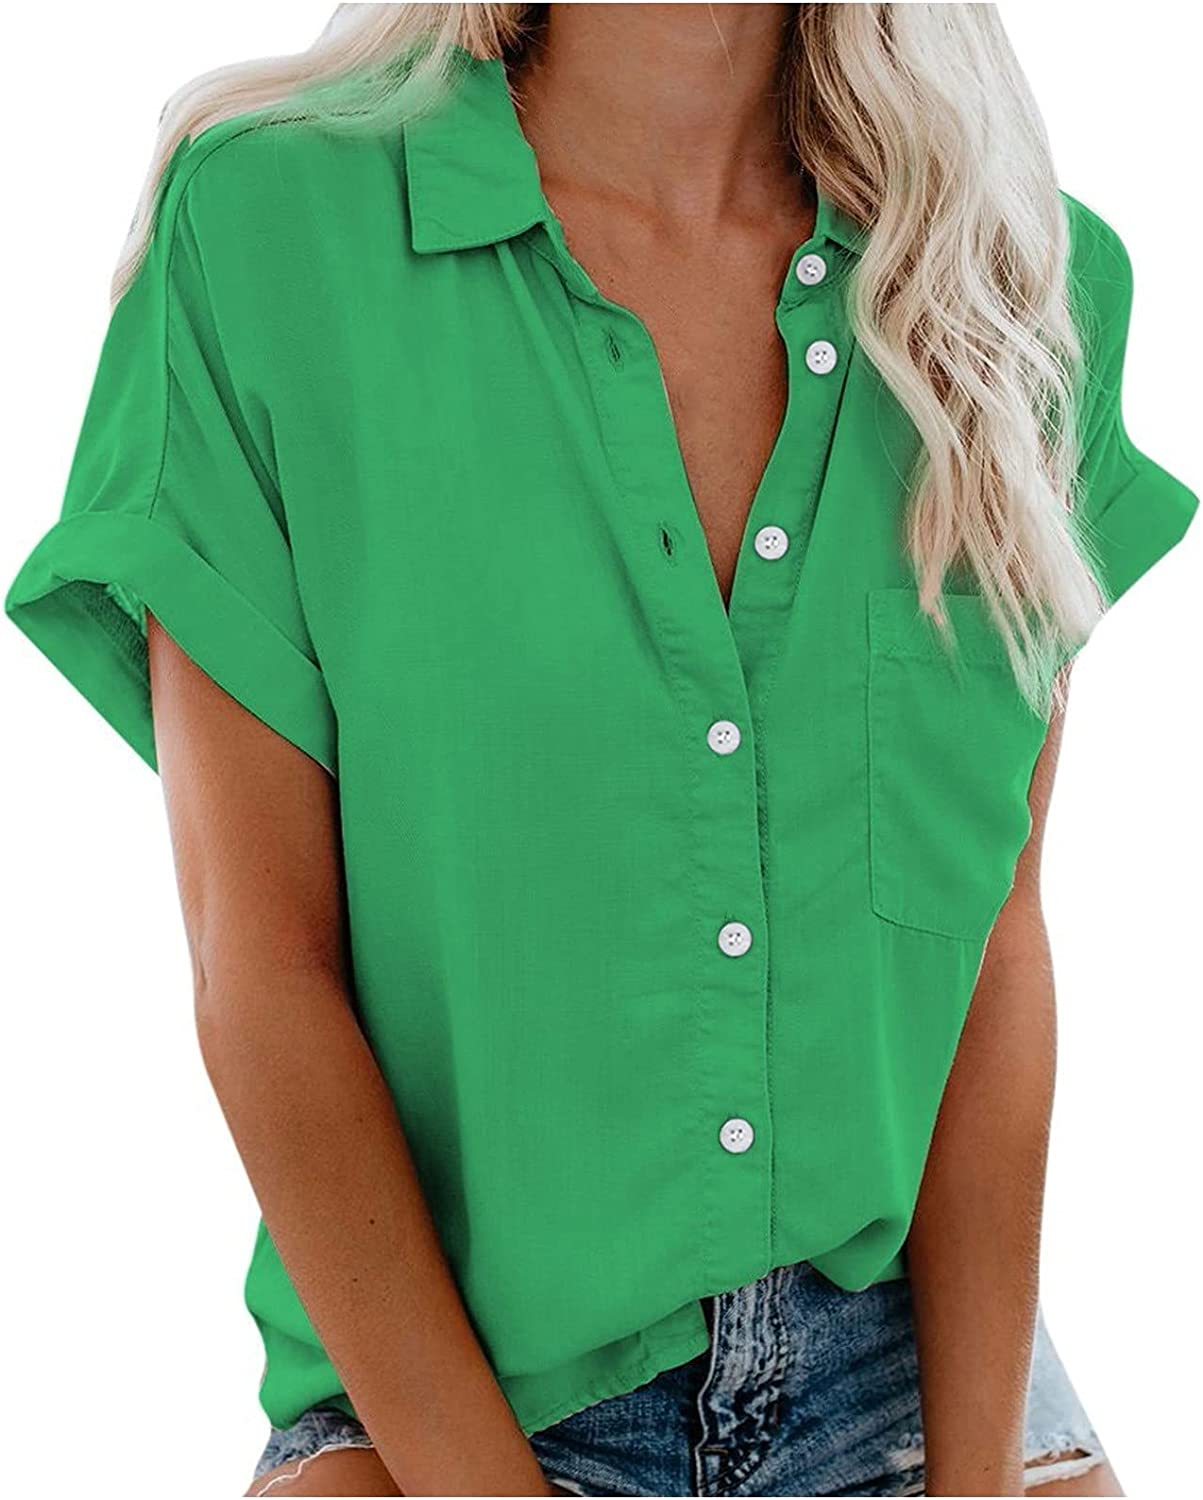 Short Sleeve Button Up Shirts for Womens Short Sleeve Shirts Cute Printed V-Neck Tshirts Blouse Summer Casual Tops Loose Fit